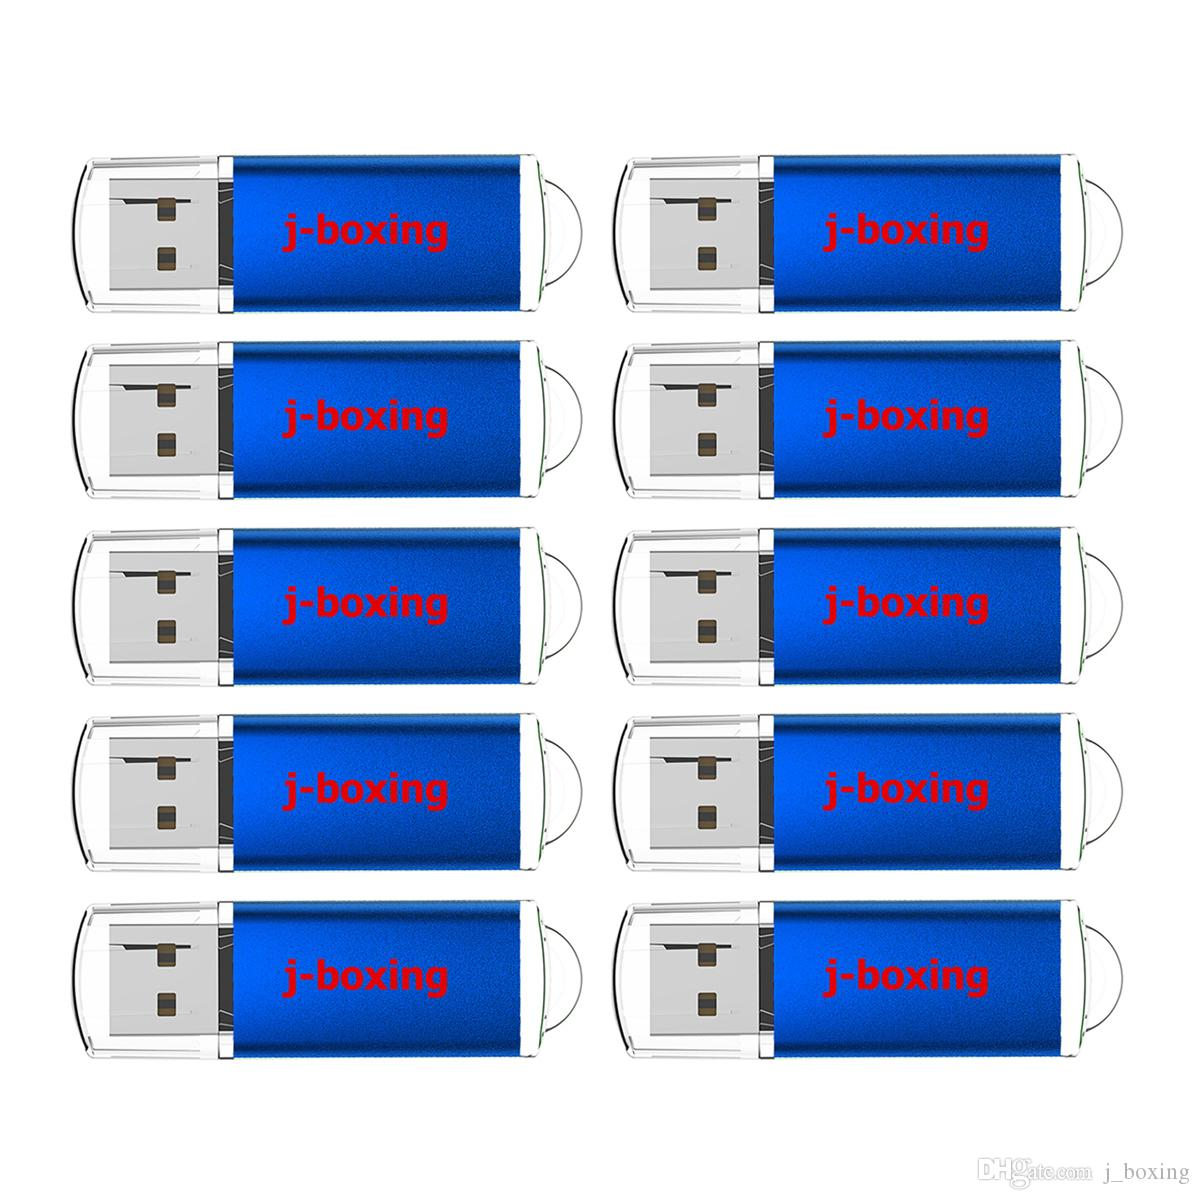 Bulk 10PCS USB 2.0 Flash Drives 2GB Memory Stick Rectangle High Speed Thumb Pen Drive Storage Promotion Gifts Colorful for Computer Laptop